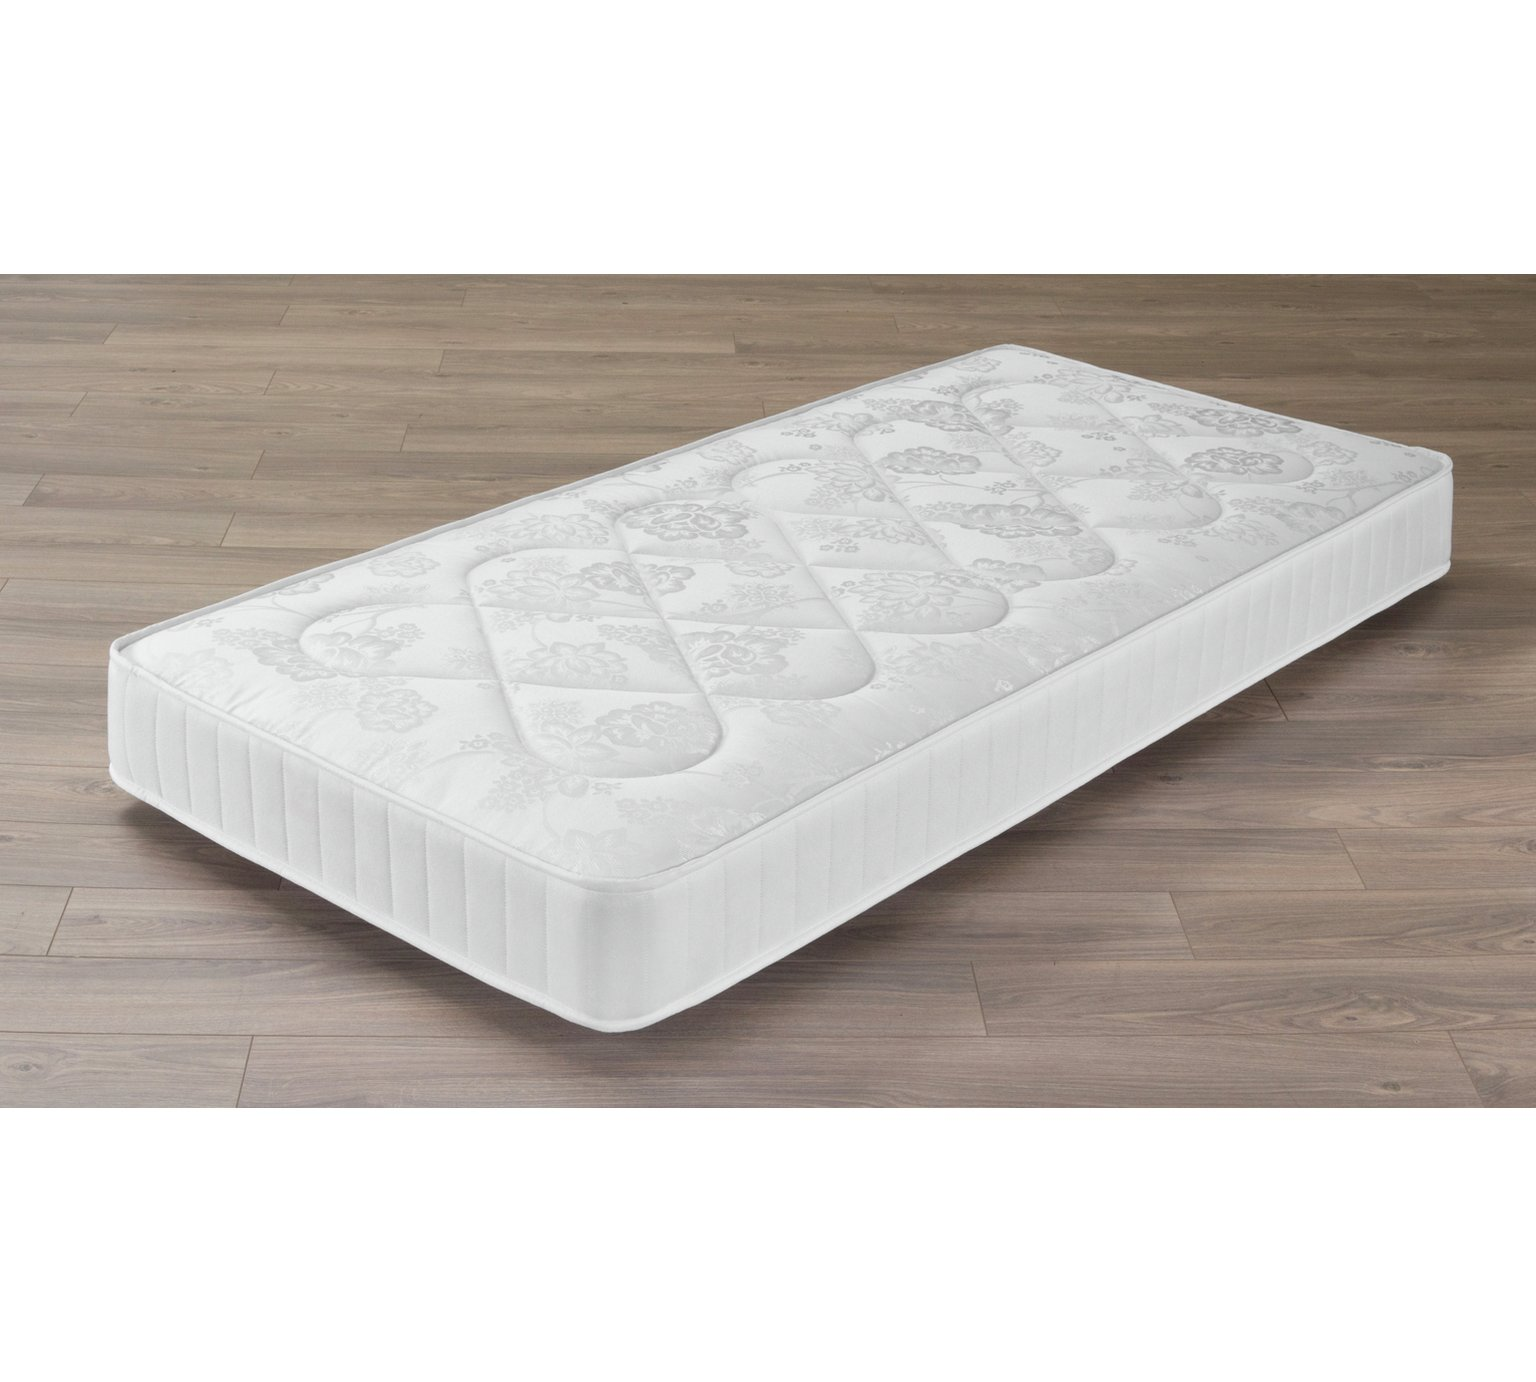 Airsprung Elmdon Open Coil Comfort Single Mattress by Airsprung 481/1972